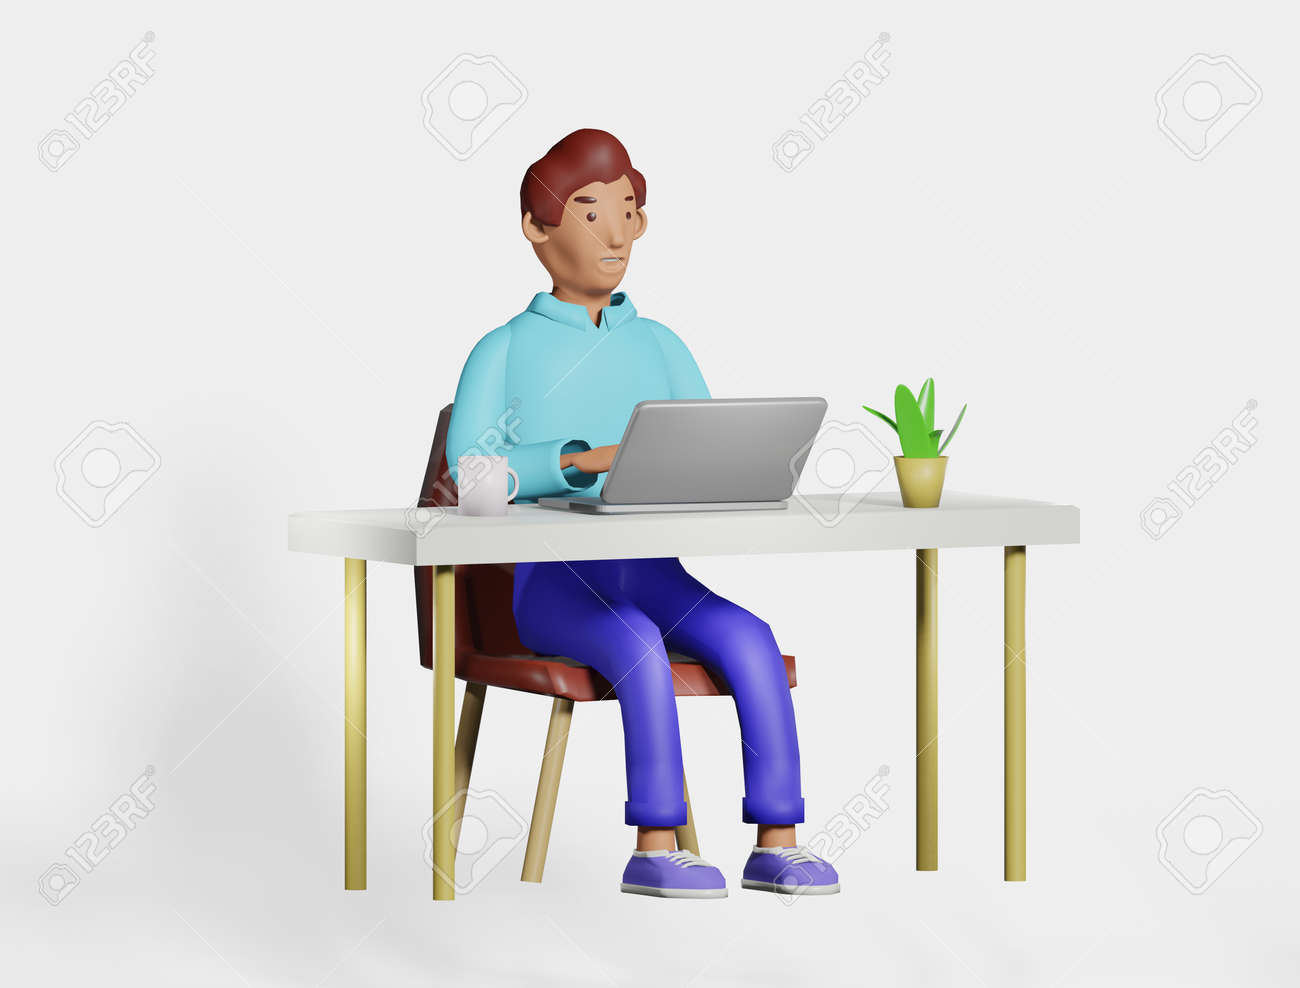 Illustration 3D character man at the desk office, home working using laptop.Smiling character freelancer, businessman working, cartoon style render - 171446628